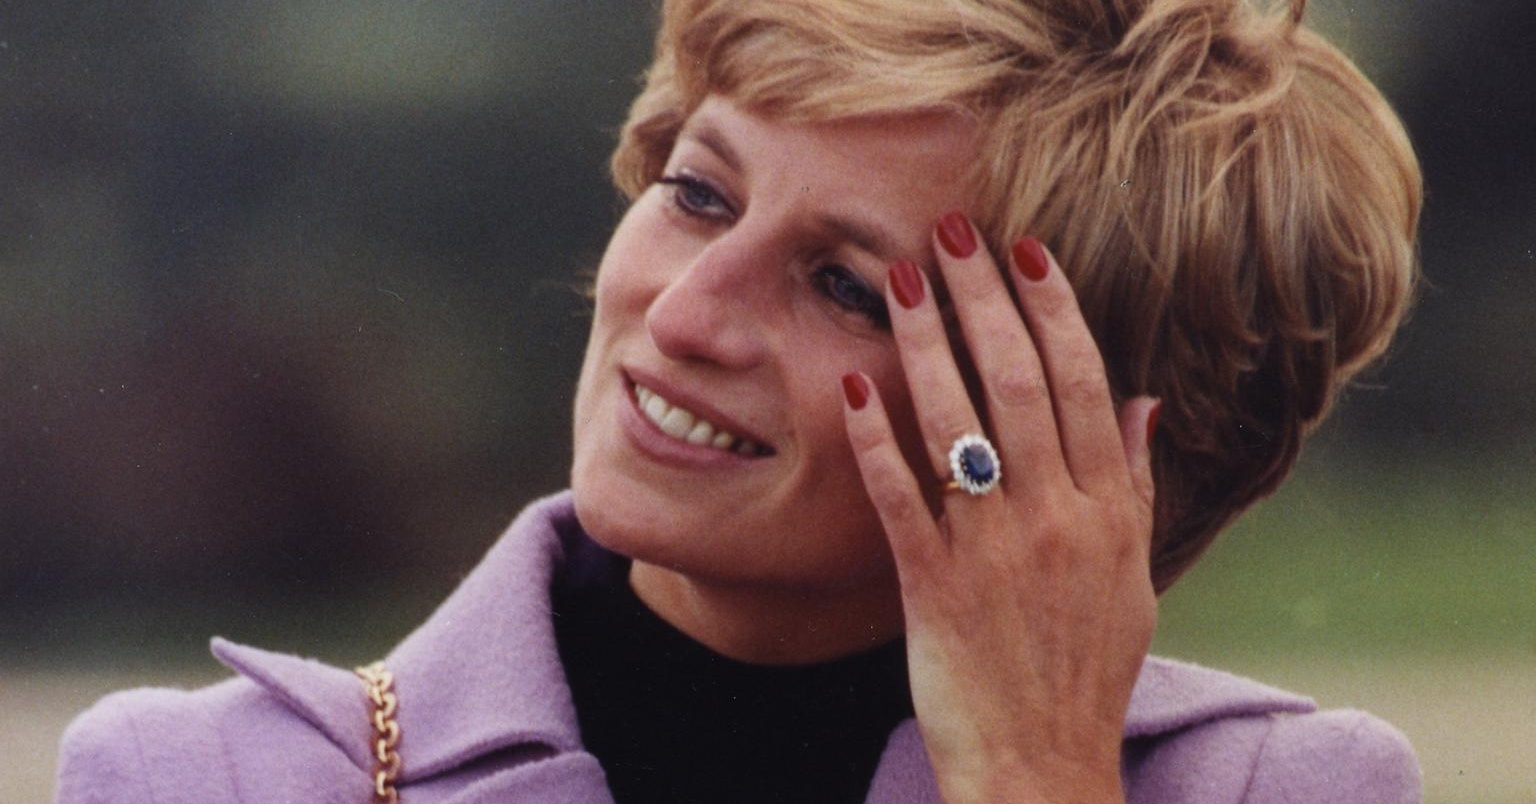 5 things to know about Princess Diana's engagement ring, as seen on The Crown